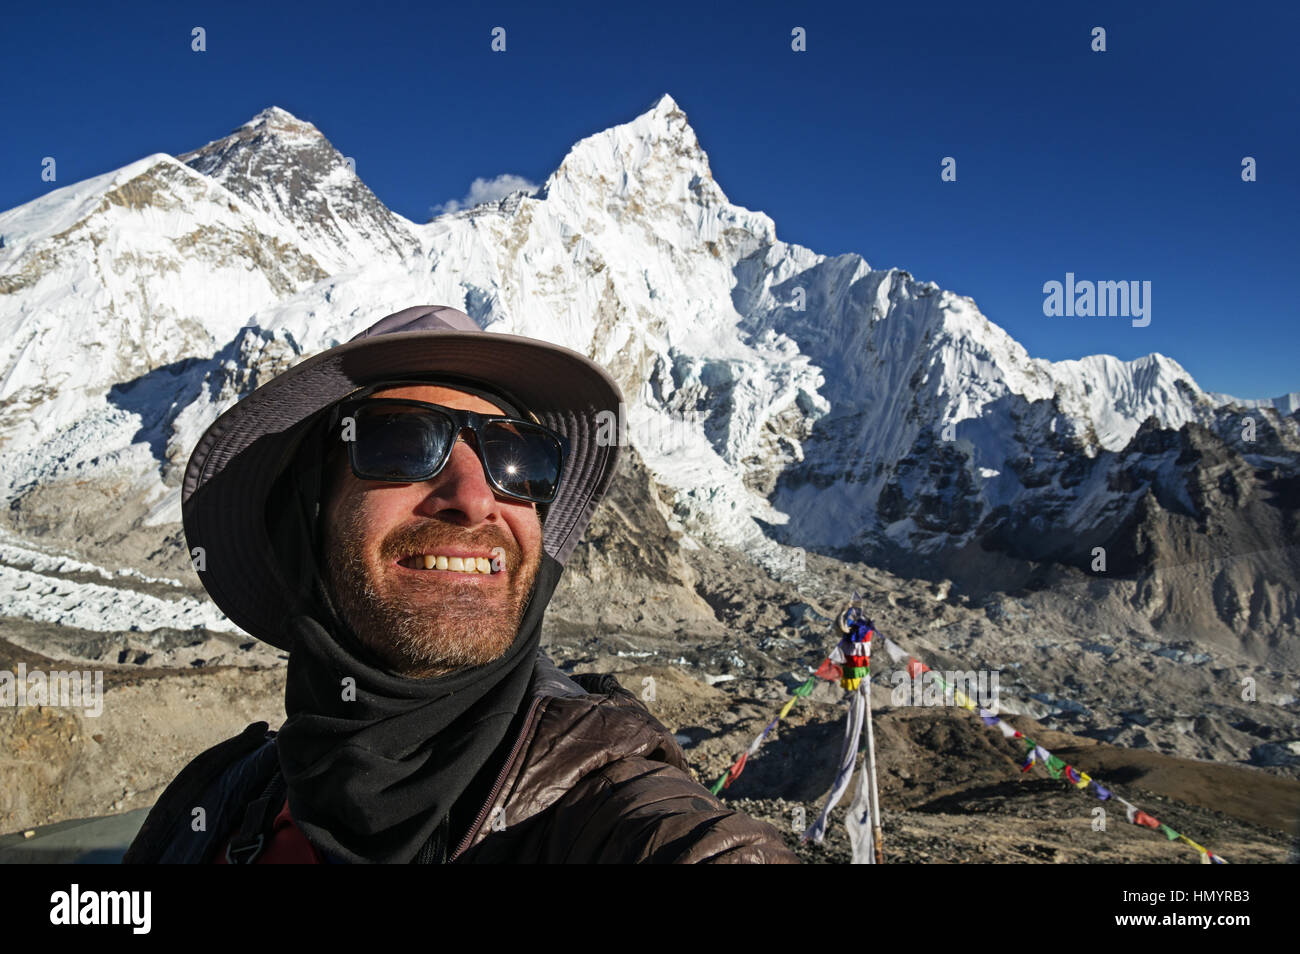 man in a selfie with Mount Everest in the background taken from the summit of Kala Patthar - Stock Image